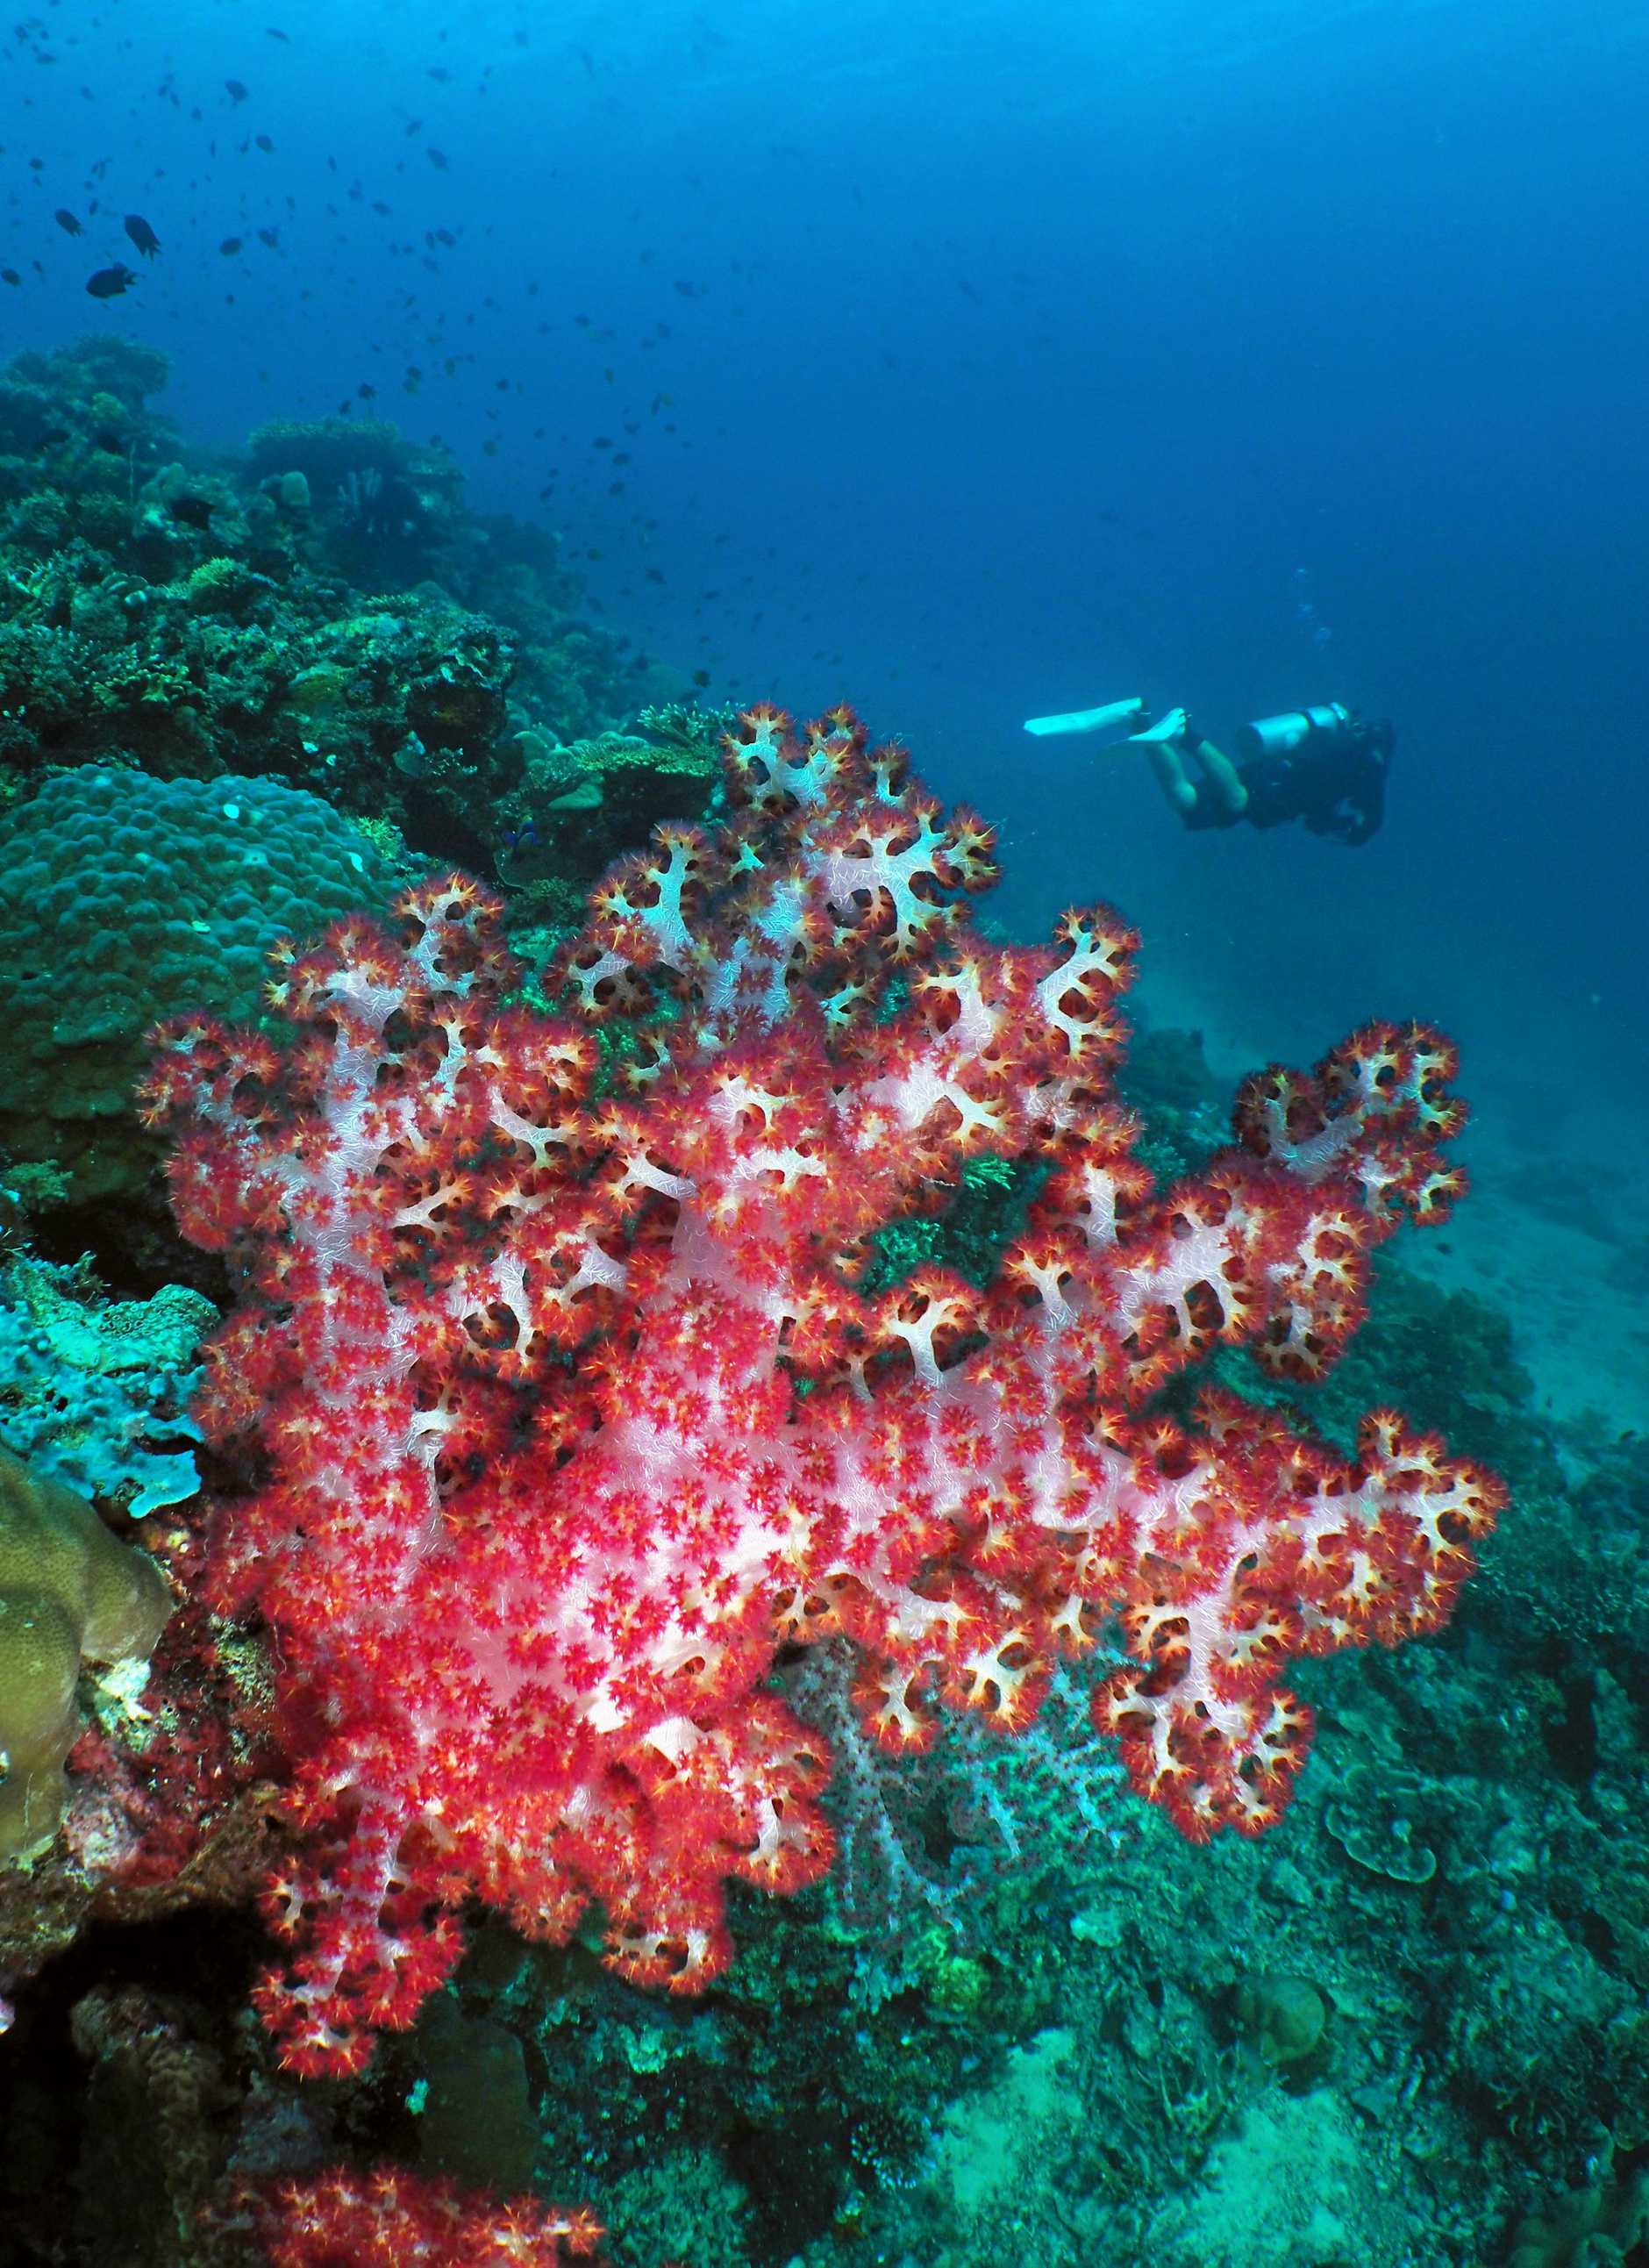 The reefs that lie within Indonesia's Komodo National Park are healthy thanks to their remoteness.